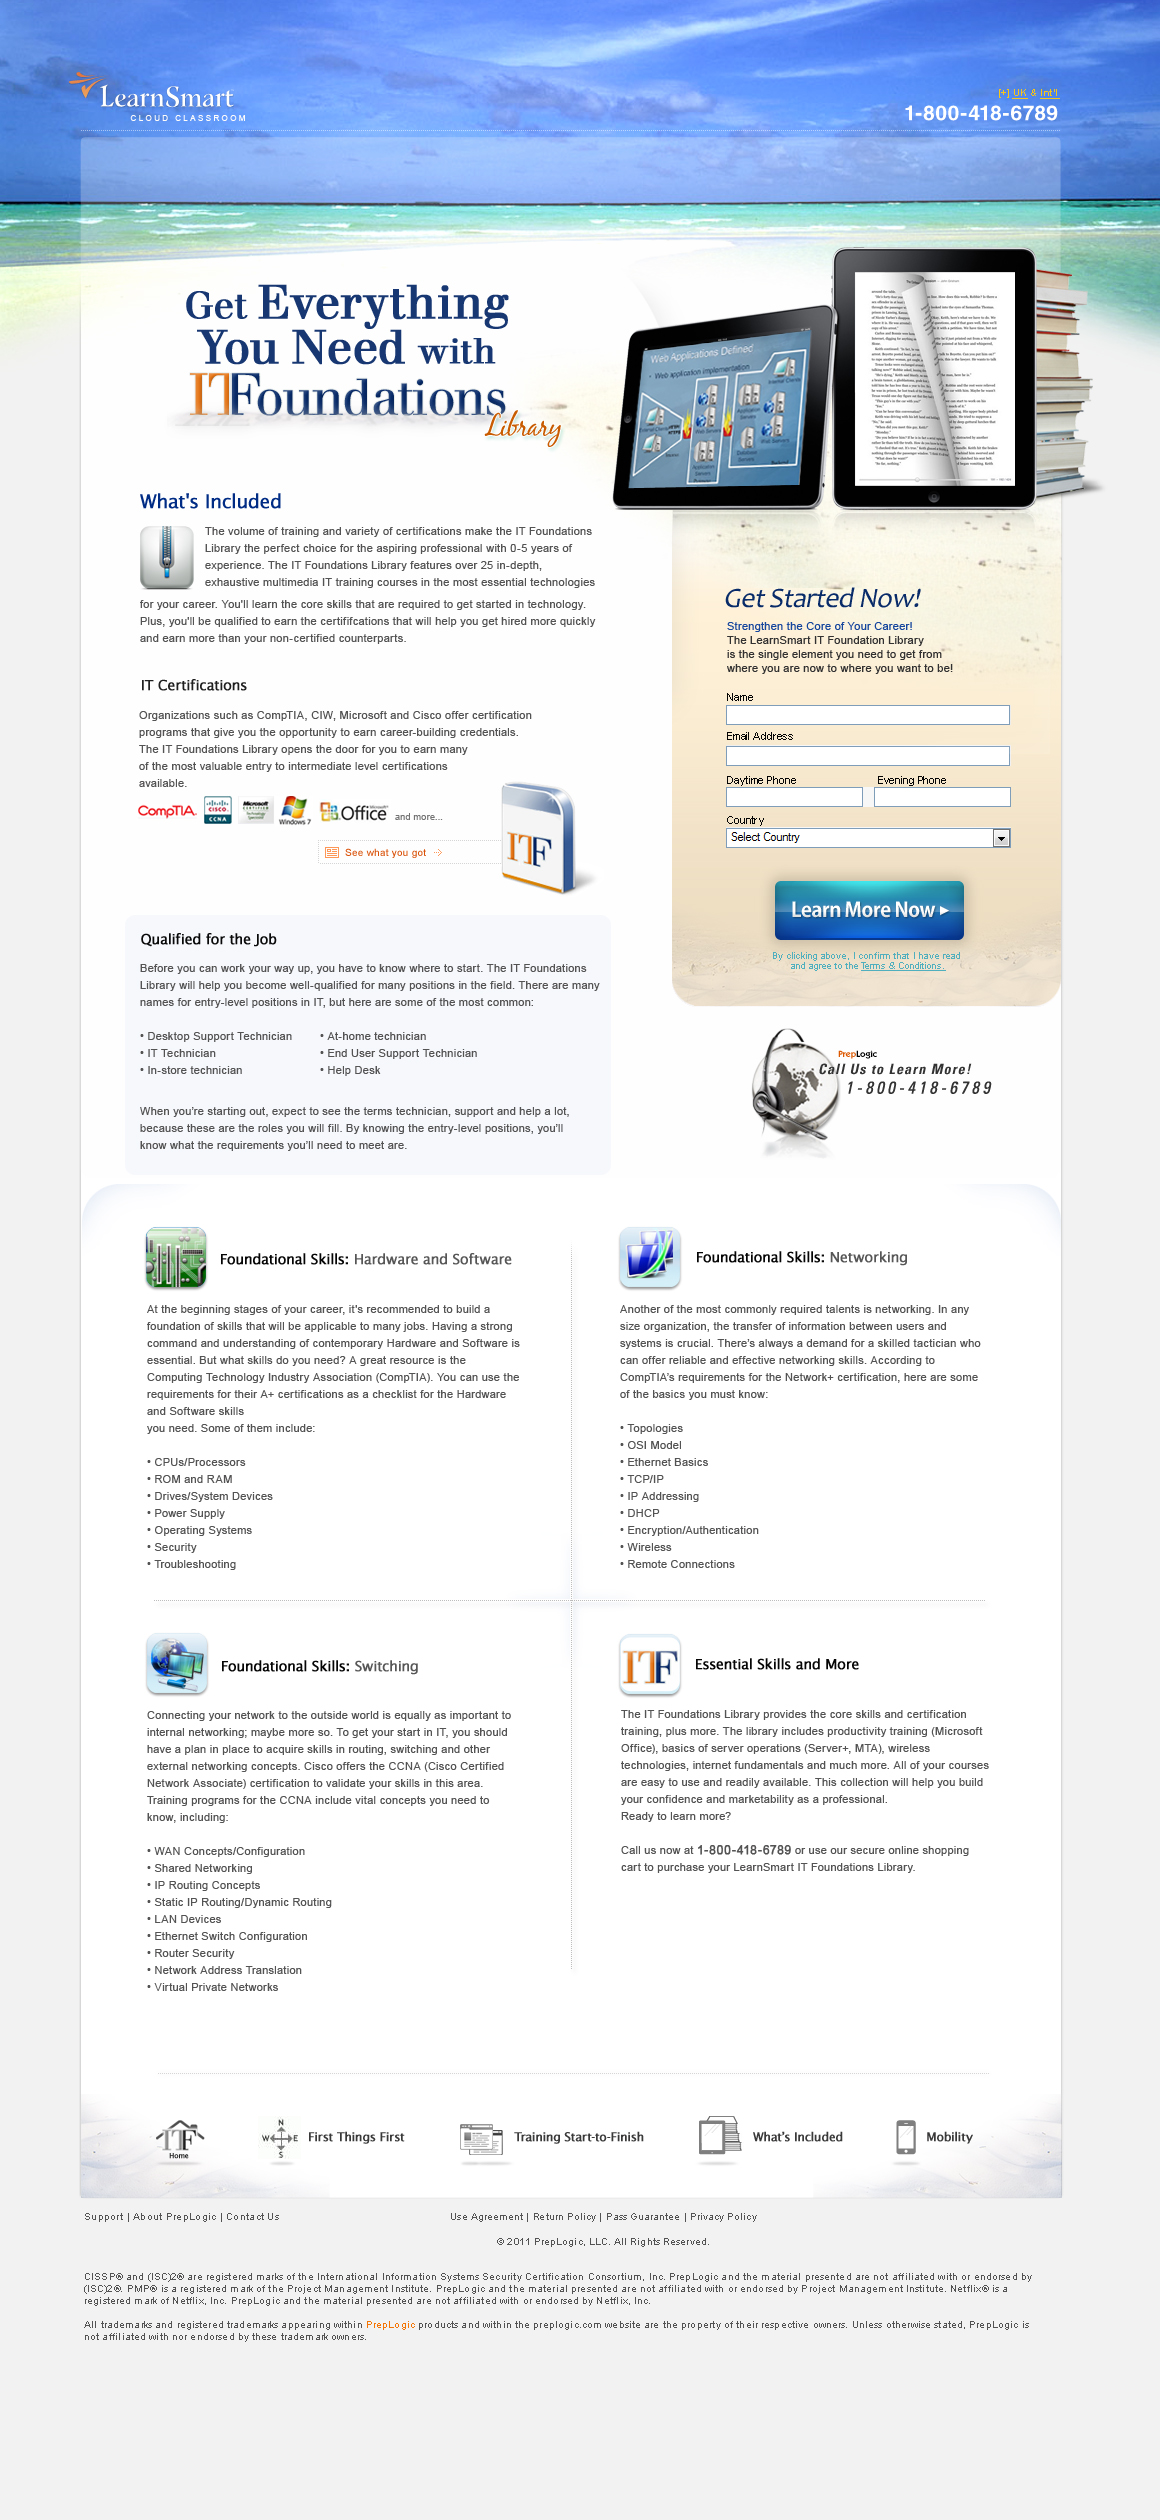 it-foundations-internal-page-07192011